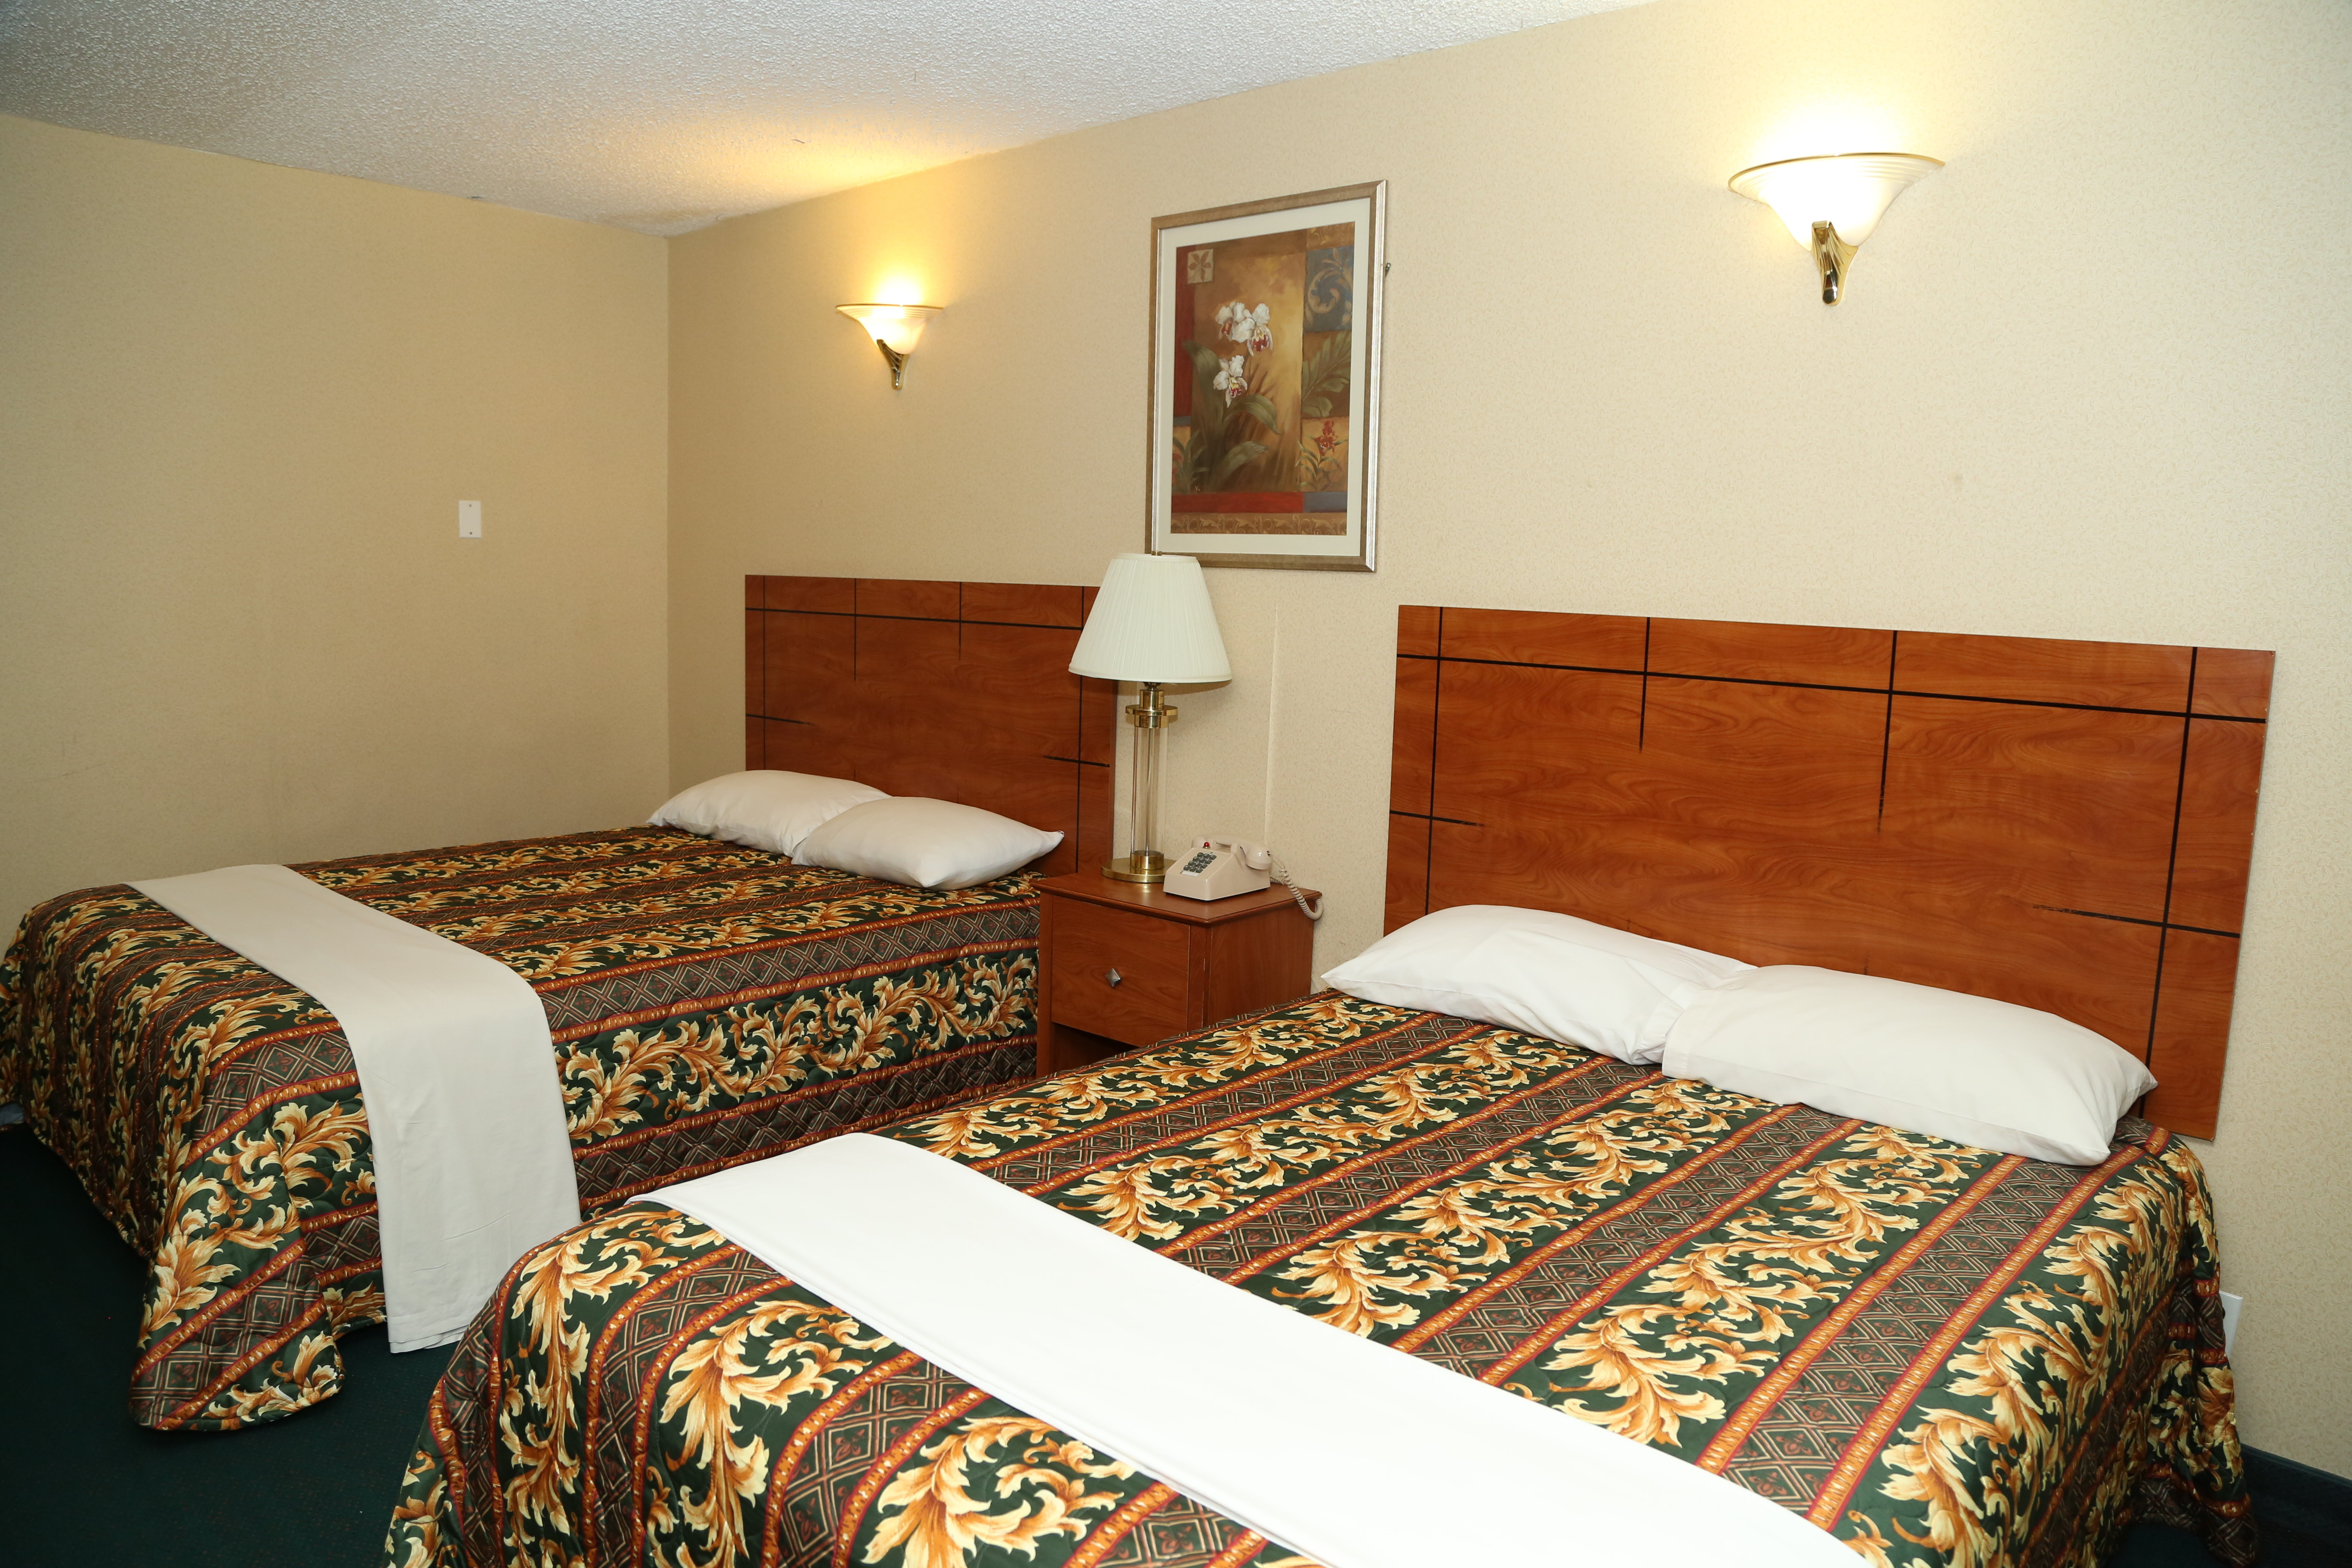 Hotel Near JFK Airport, Queens New York- Best price guaranteed on ...